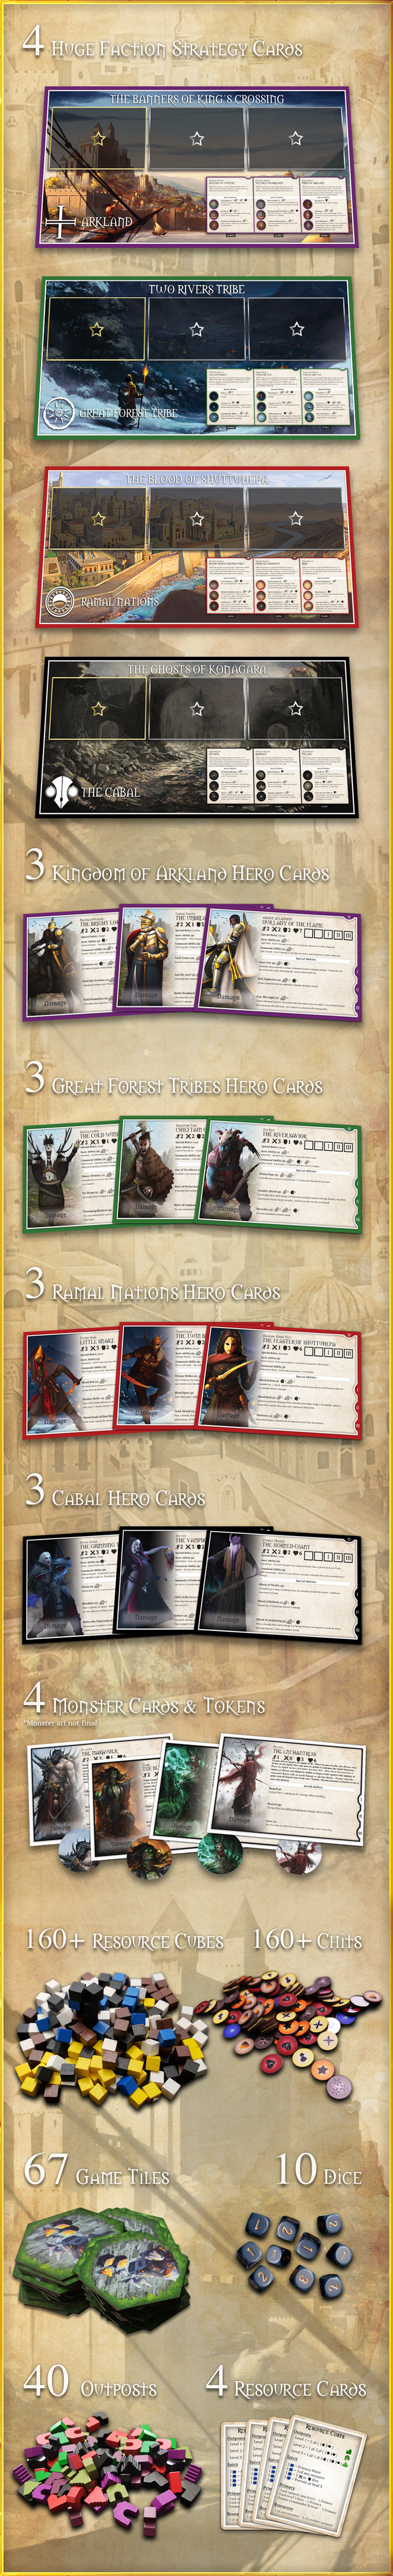 Unlocked stretch goals (additional tiles, linen finish) will also be INCLUDED!